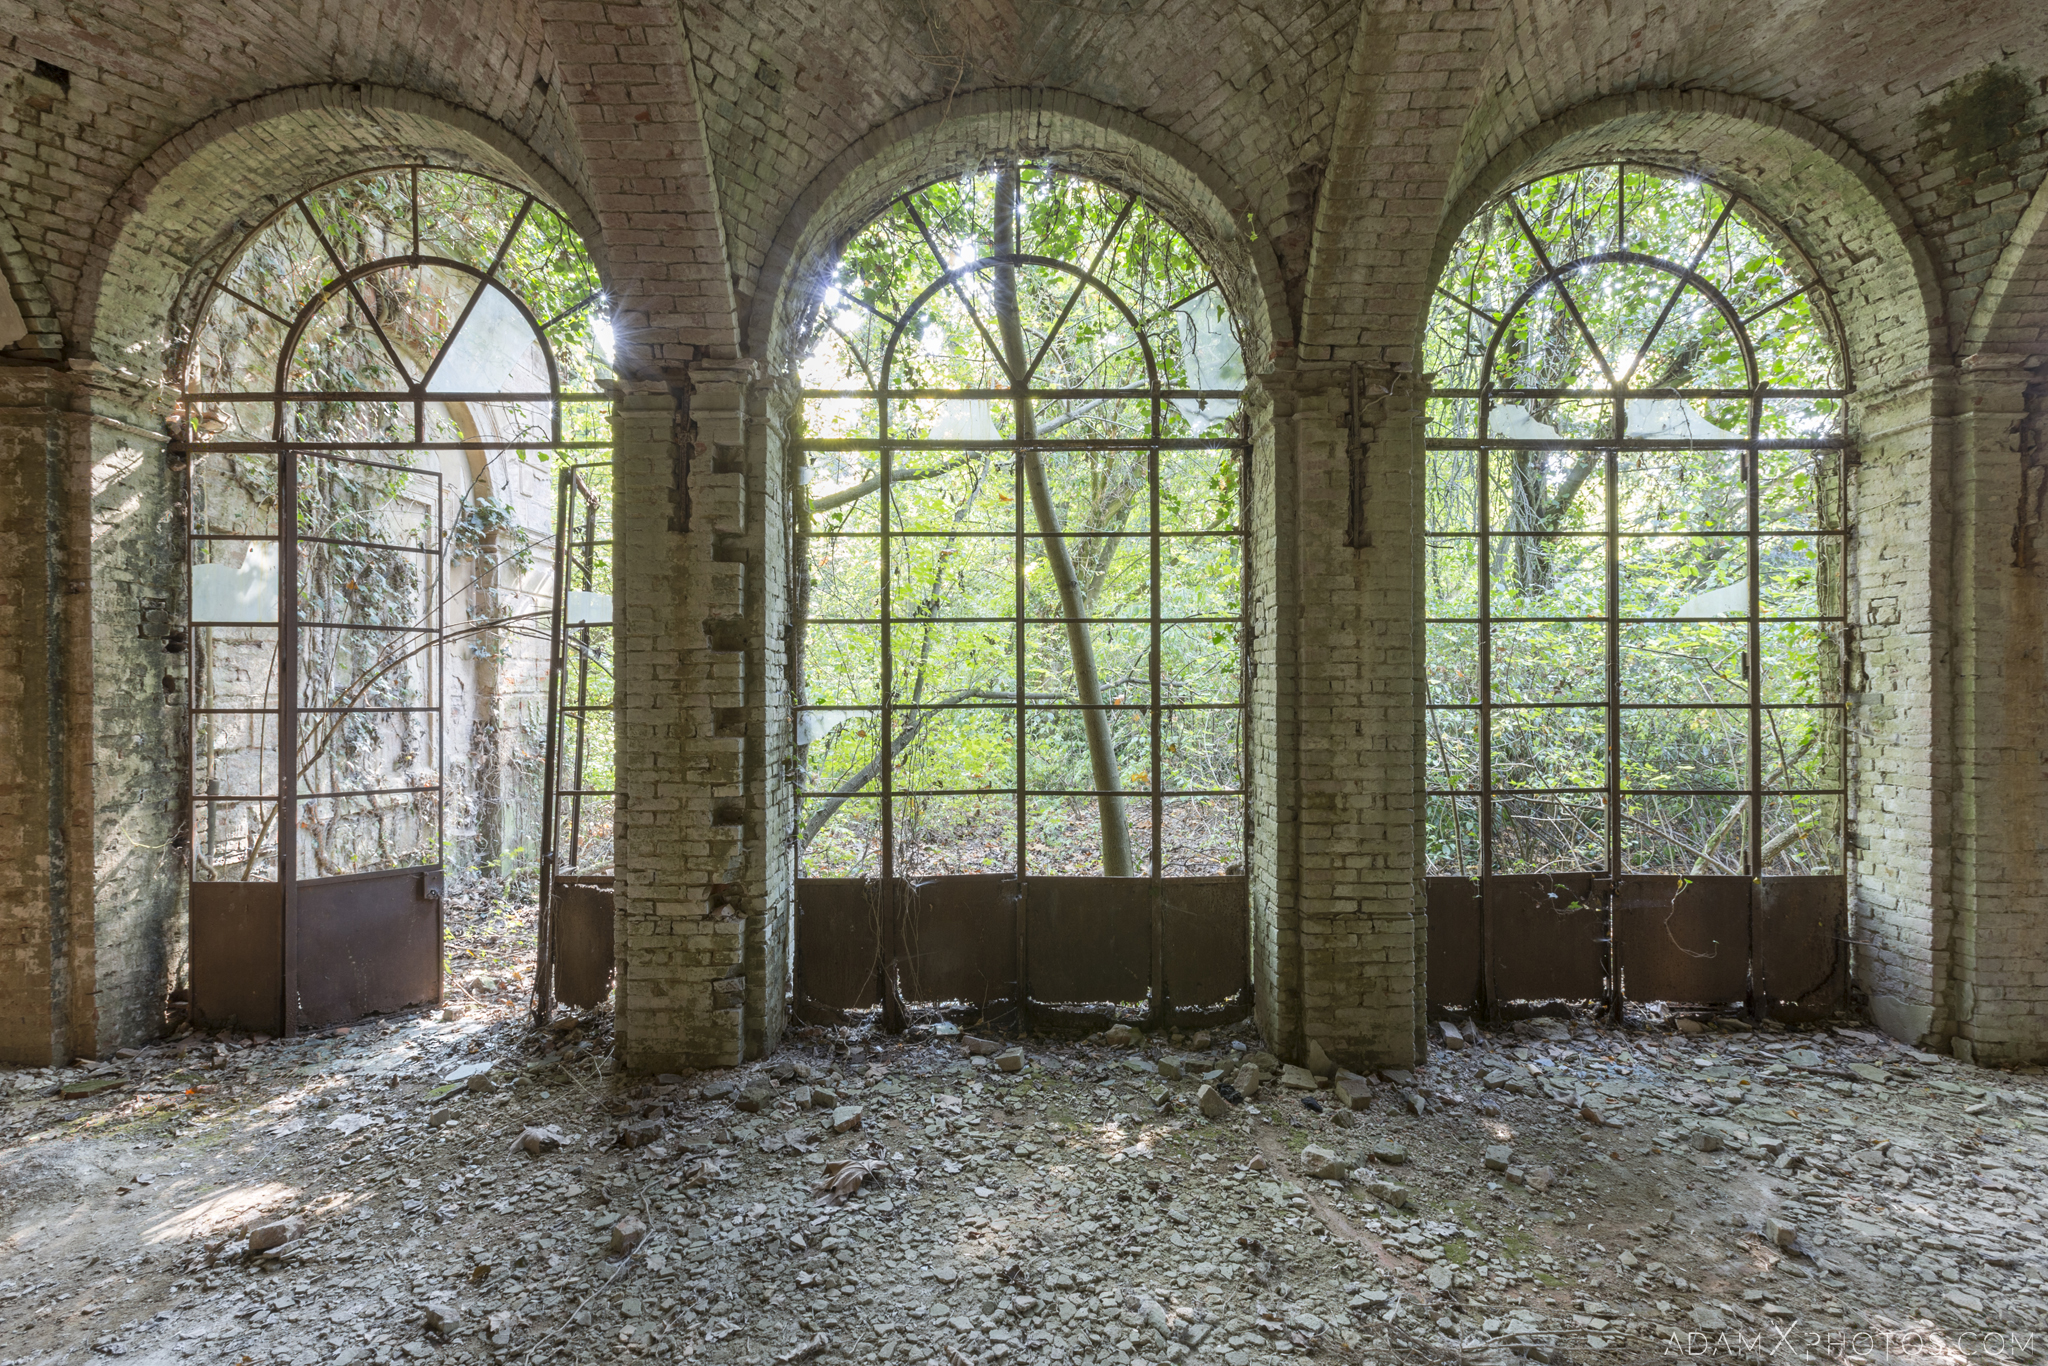 Greenhouse garden windows Palazzo di L dei Conte M Castello di Lauriano Urbex Adam X Urban Exploration Italy Italia Access 2016 Abandoned Grand Ornate Neoclassical decay lost forgotten infiltration derelict location creepy haunting eerie